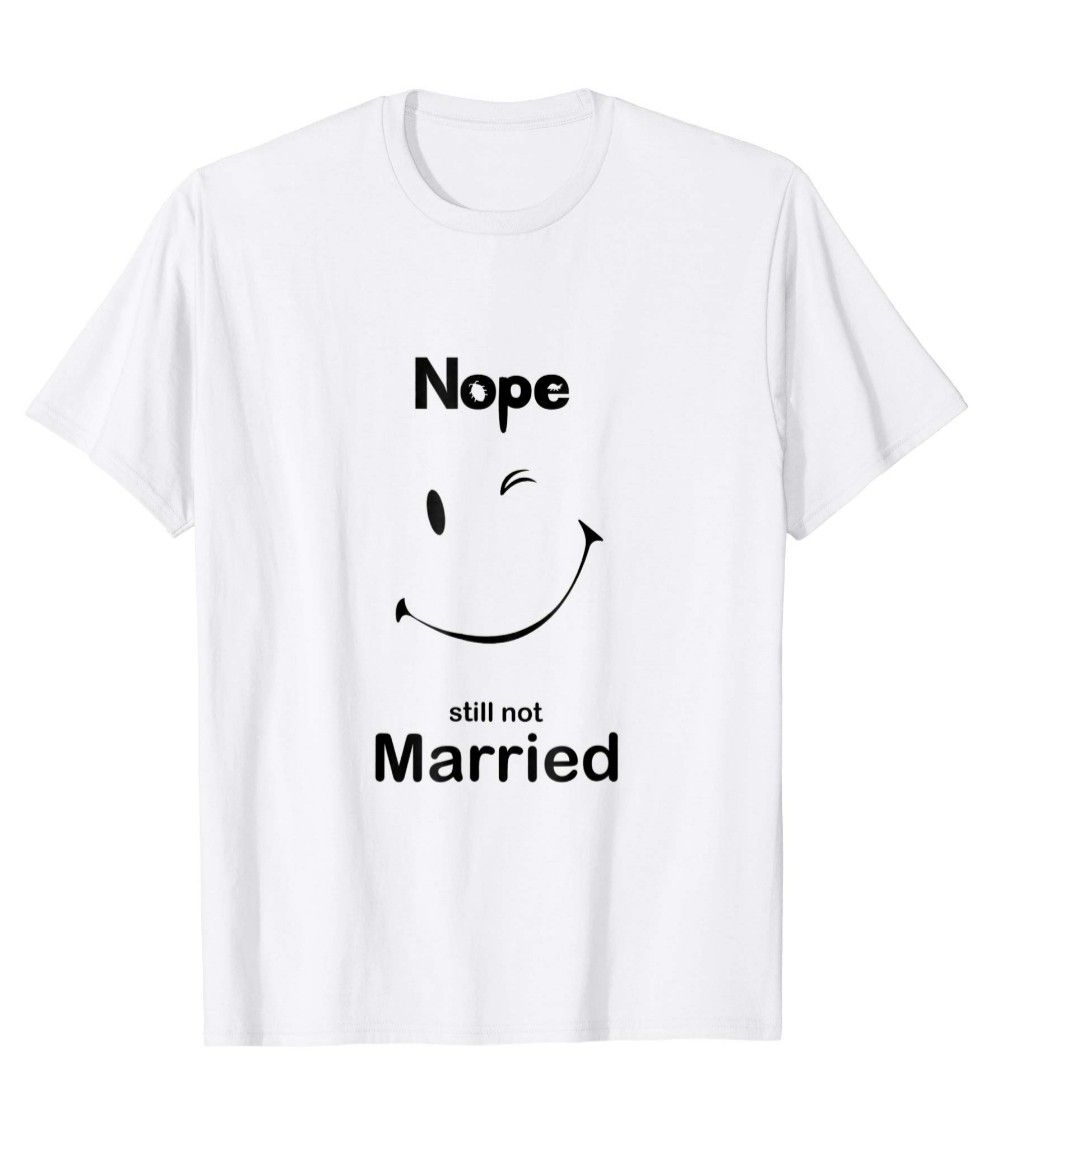 c4e1047ee Are you tired of your family and friends asking you if you are still not  married